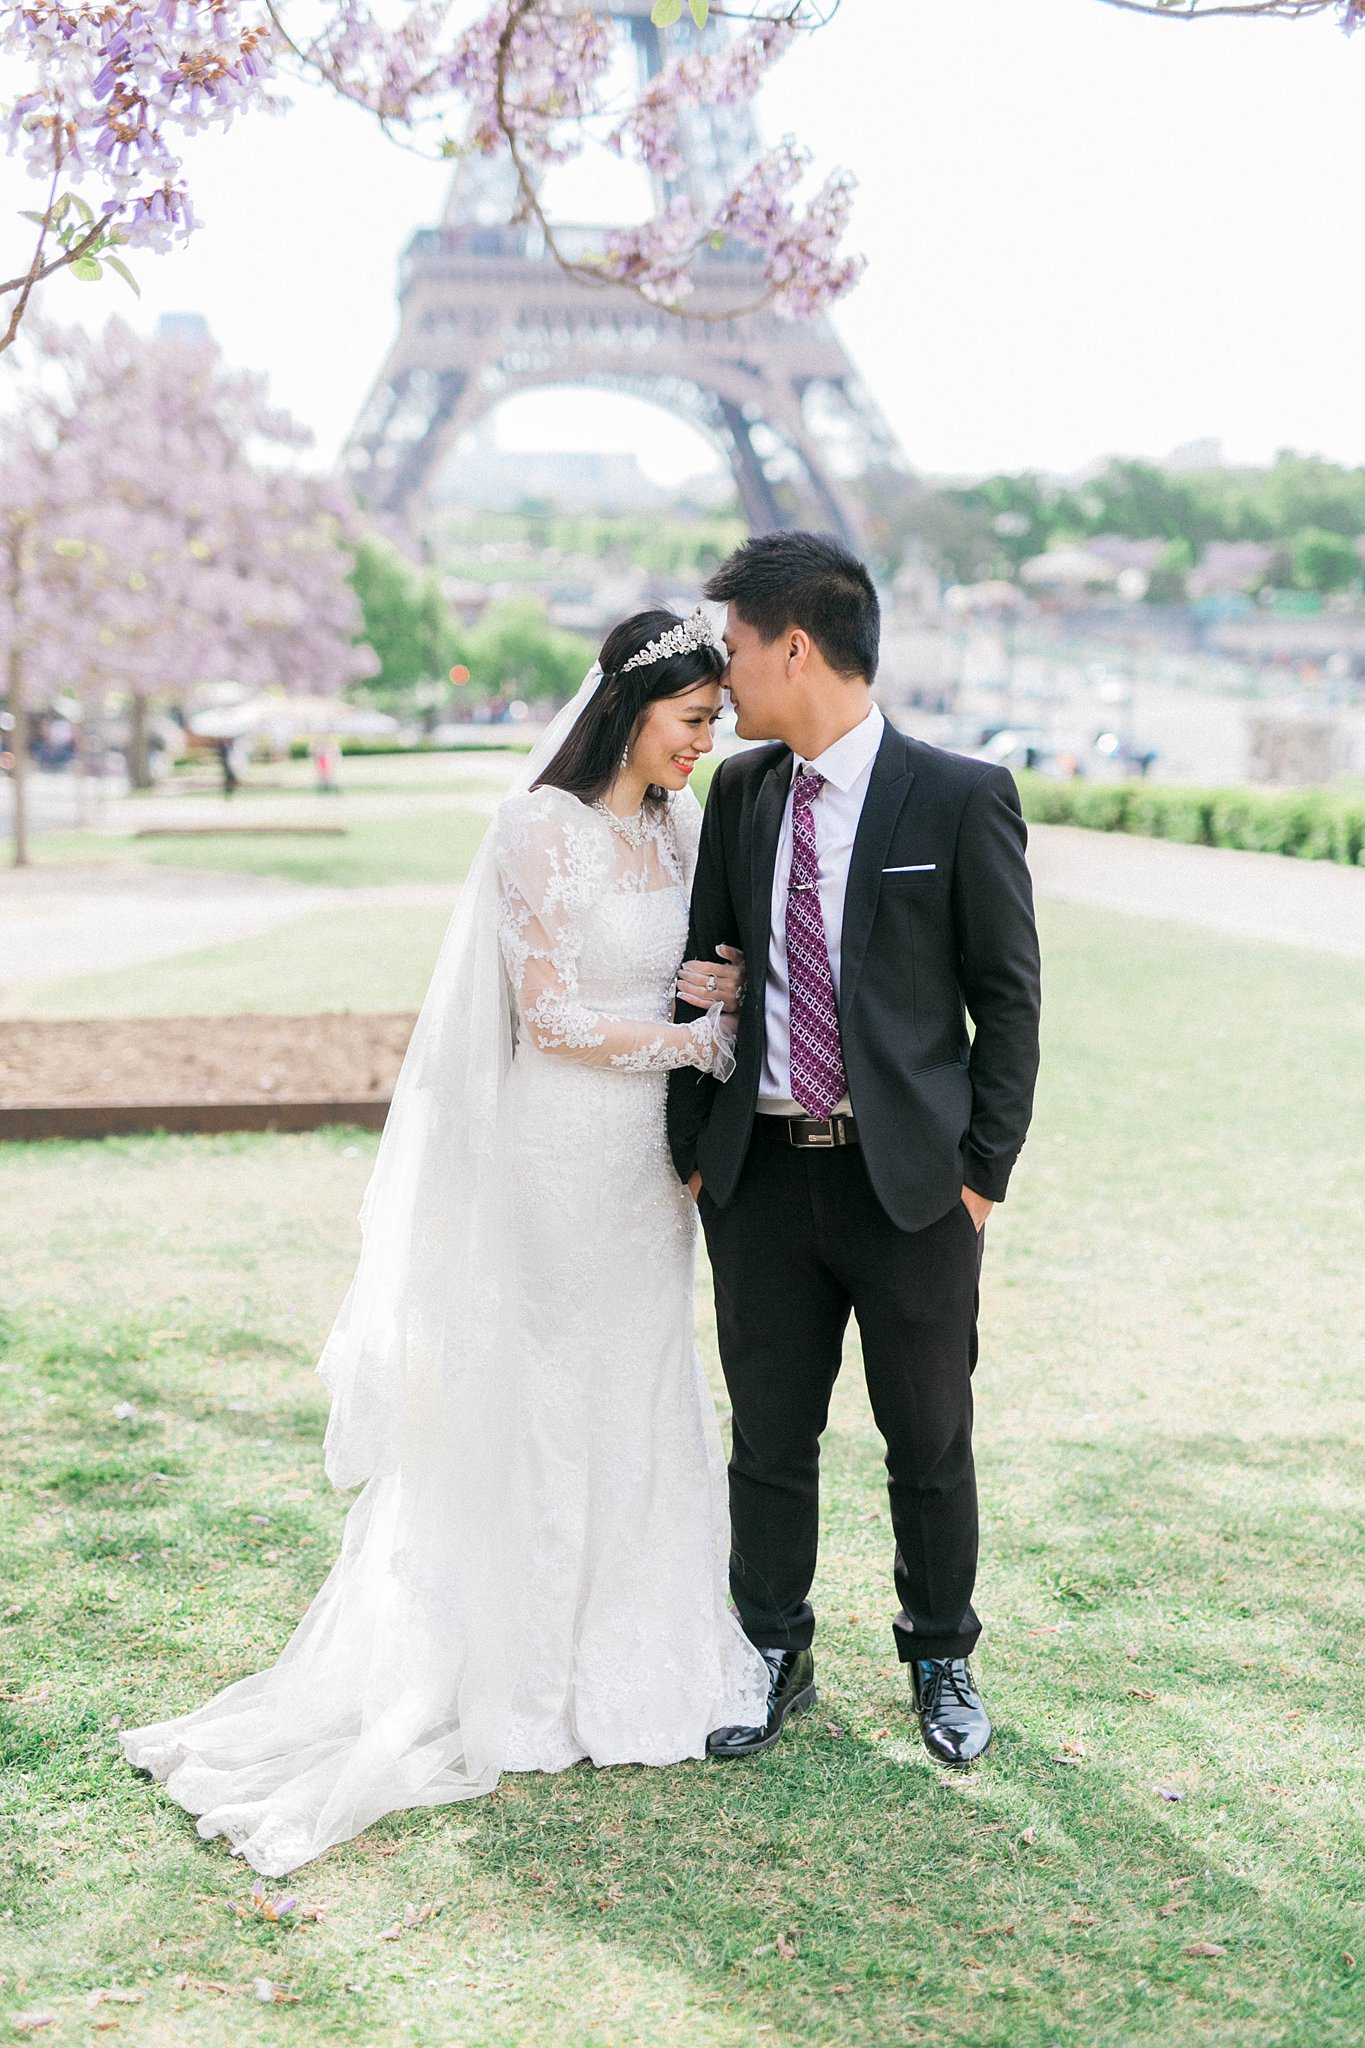 destination elopement paris wedding photographer, madison wedding photography miriam bulcher photography